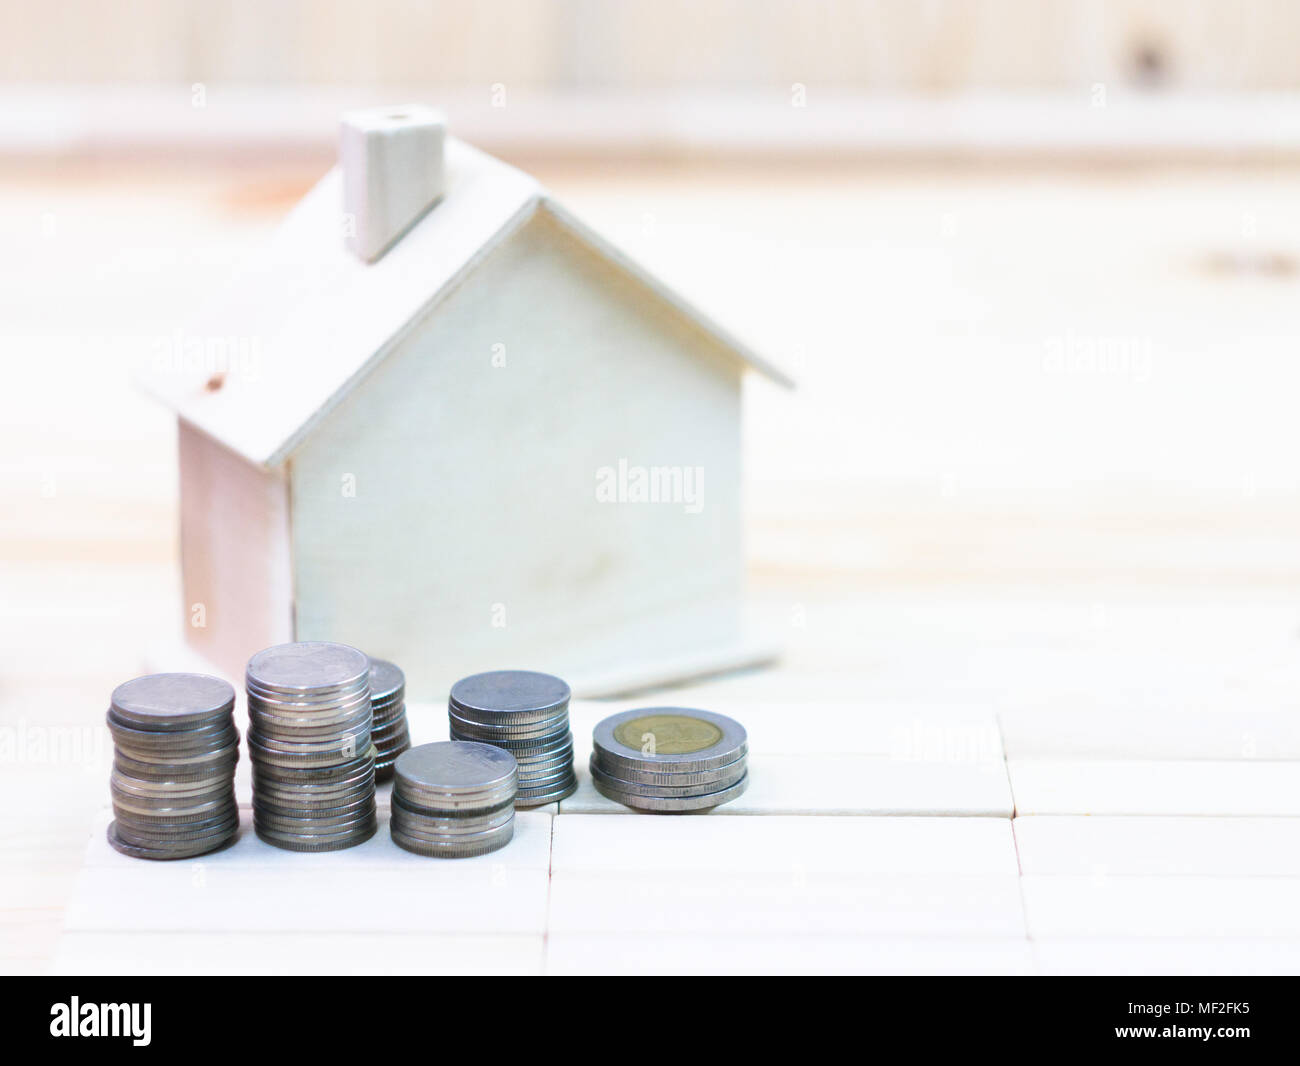 coins and house is located on a wooden floor - Stock Image